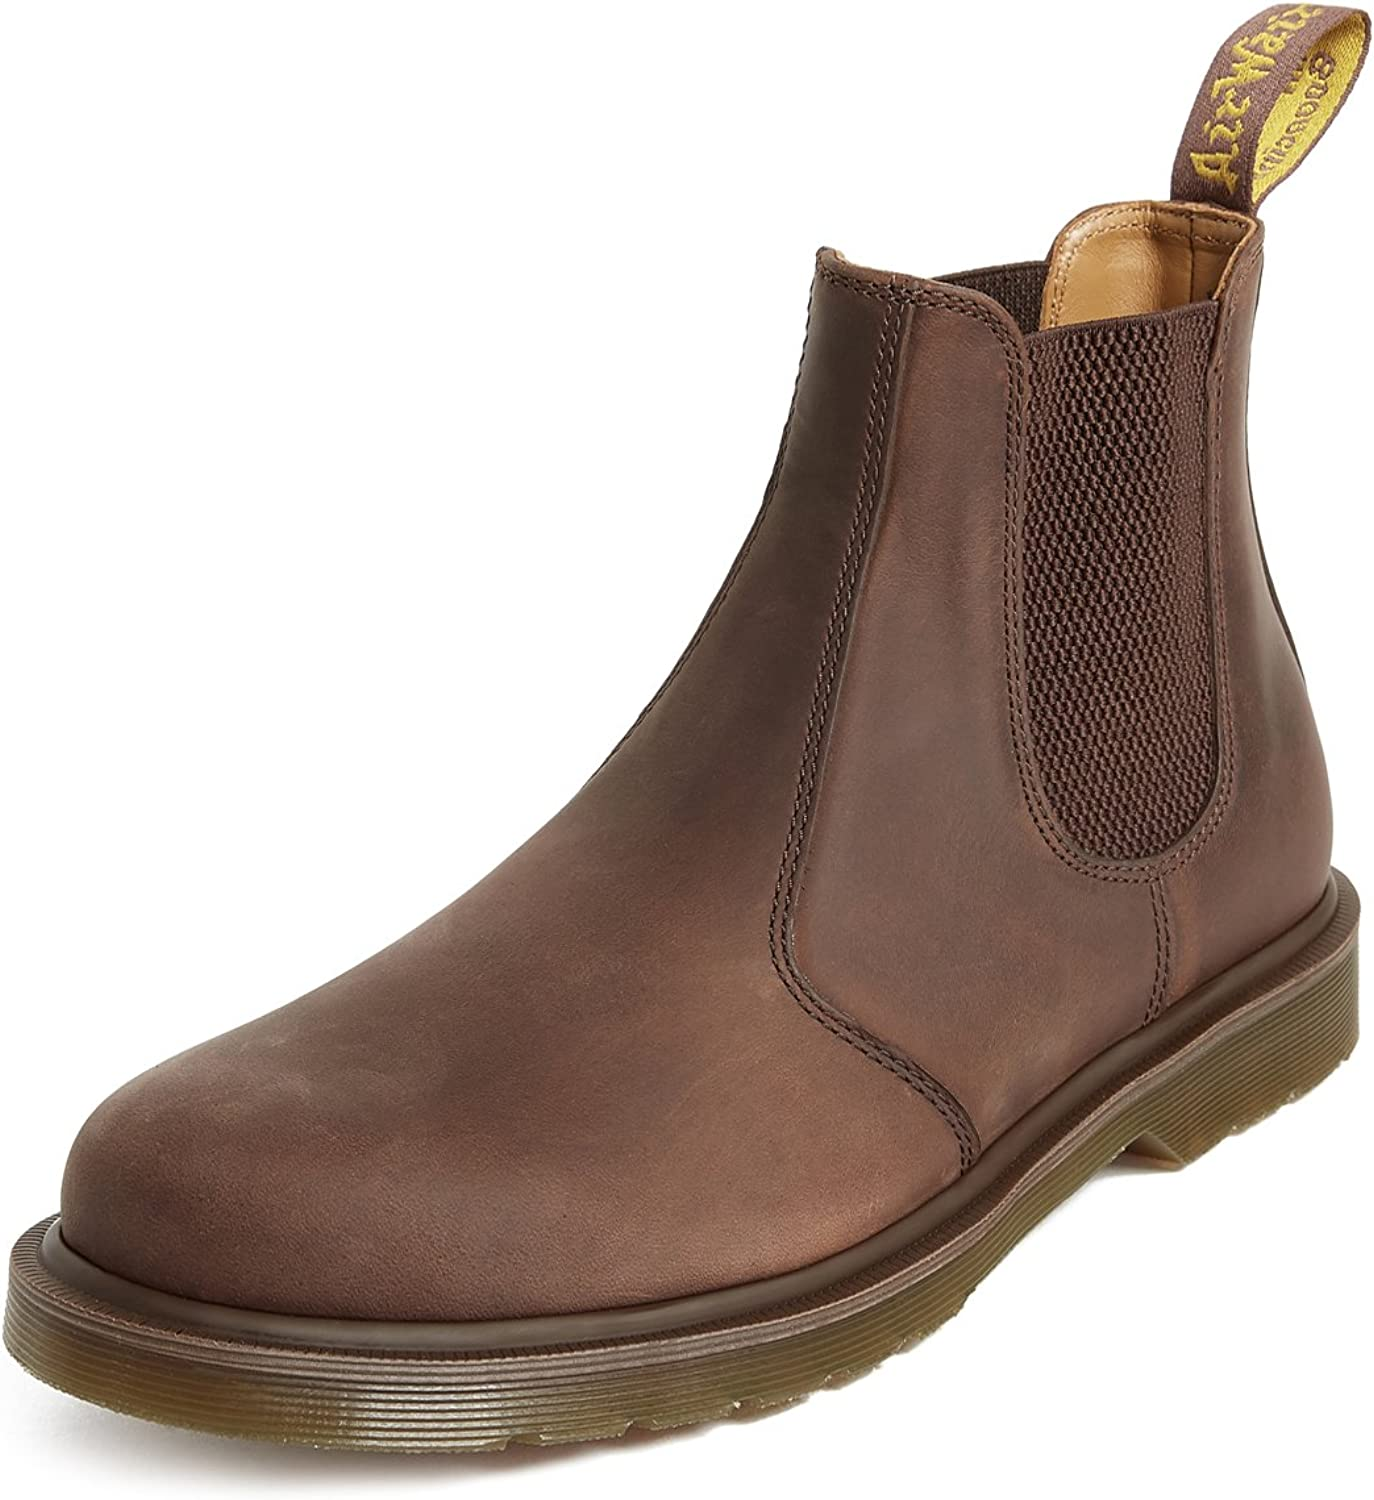 Dr. Free Max 42% OFF shipping New Martens Women's Boot Chelsea